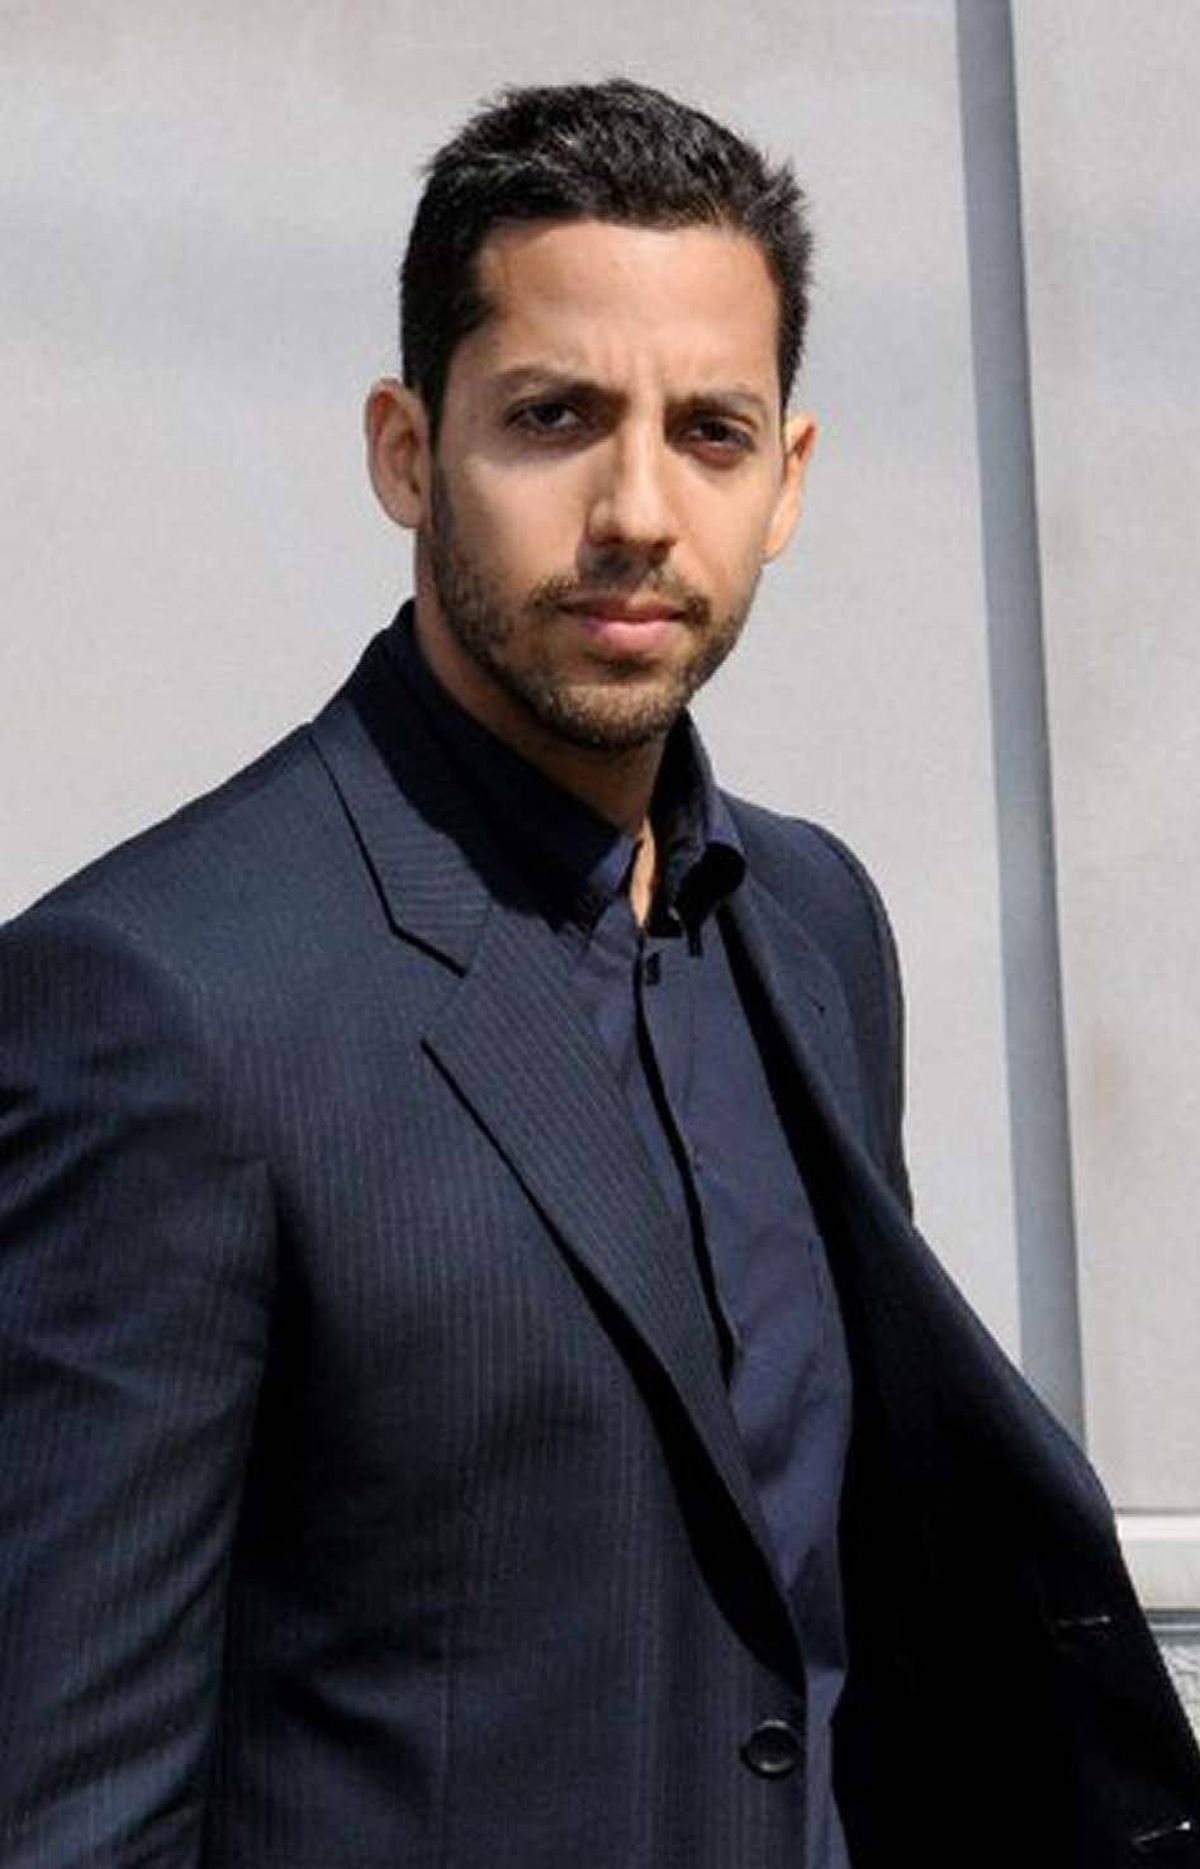 REALITY David Blaine: What Is Magic? TLC, 10 p.m. ET, 7 p.m. PT Is David Blaine the modern-day Houdini? The master illusionist became famous with his bizarre endurance stunts – including encasing himself in a block of ice in Times Square for 63 hours – and his ability to perform sleight of hand. There's not much structure to this special, in which he travels all over the U.S. to perform deft feats of legerdemain before astounded spectators. The highlights include Blaine stealing a cop's watch and fooling the entire New York Giants football team with amazing card tricks.